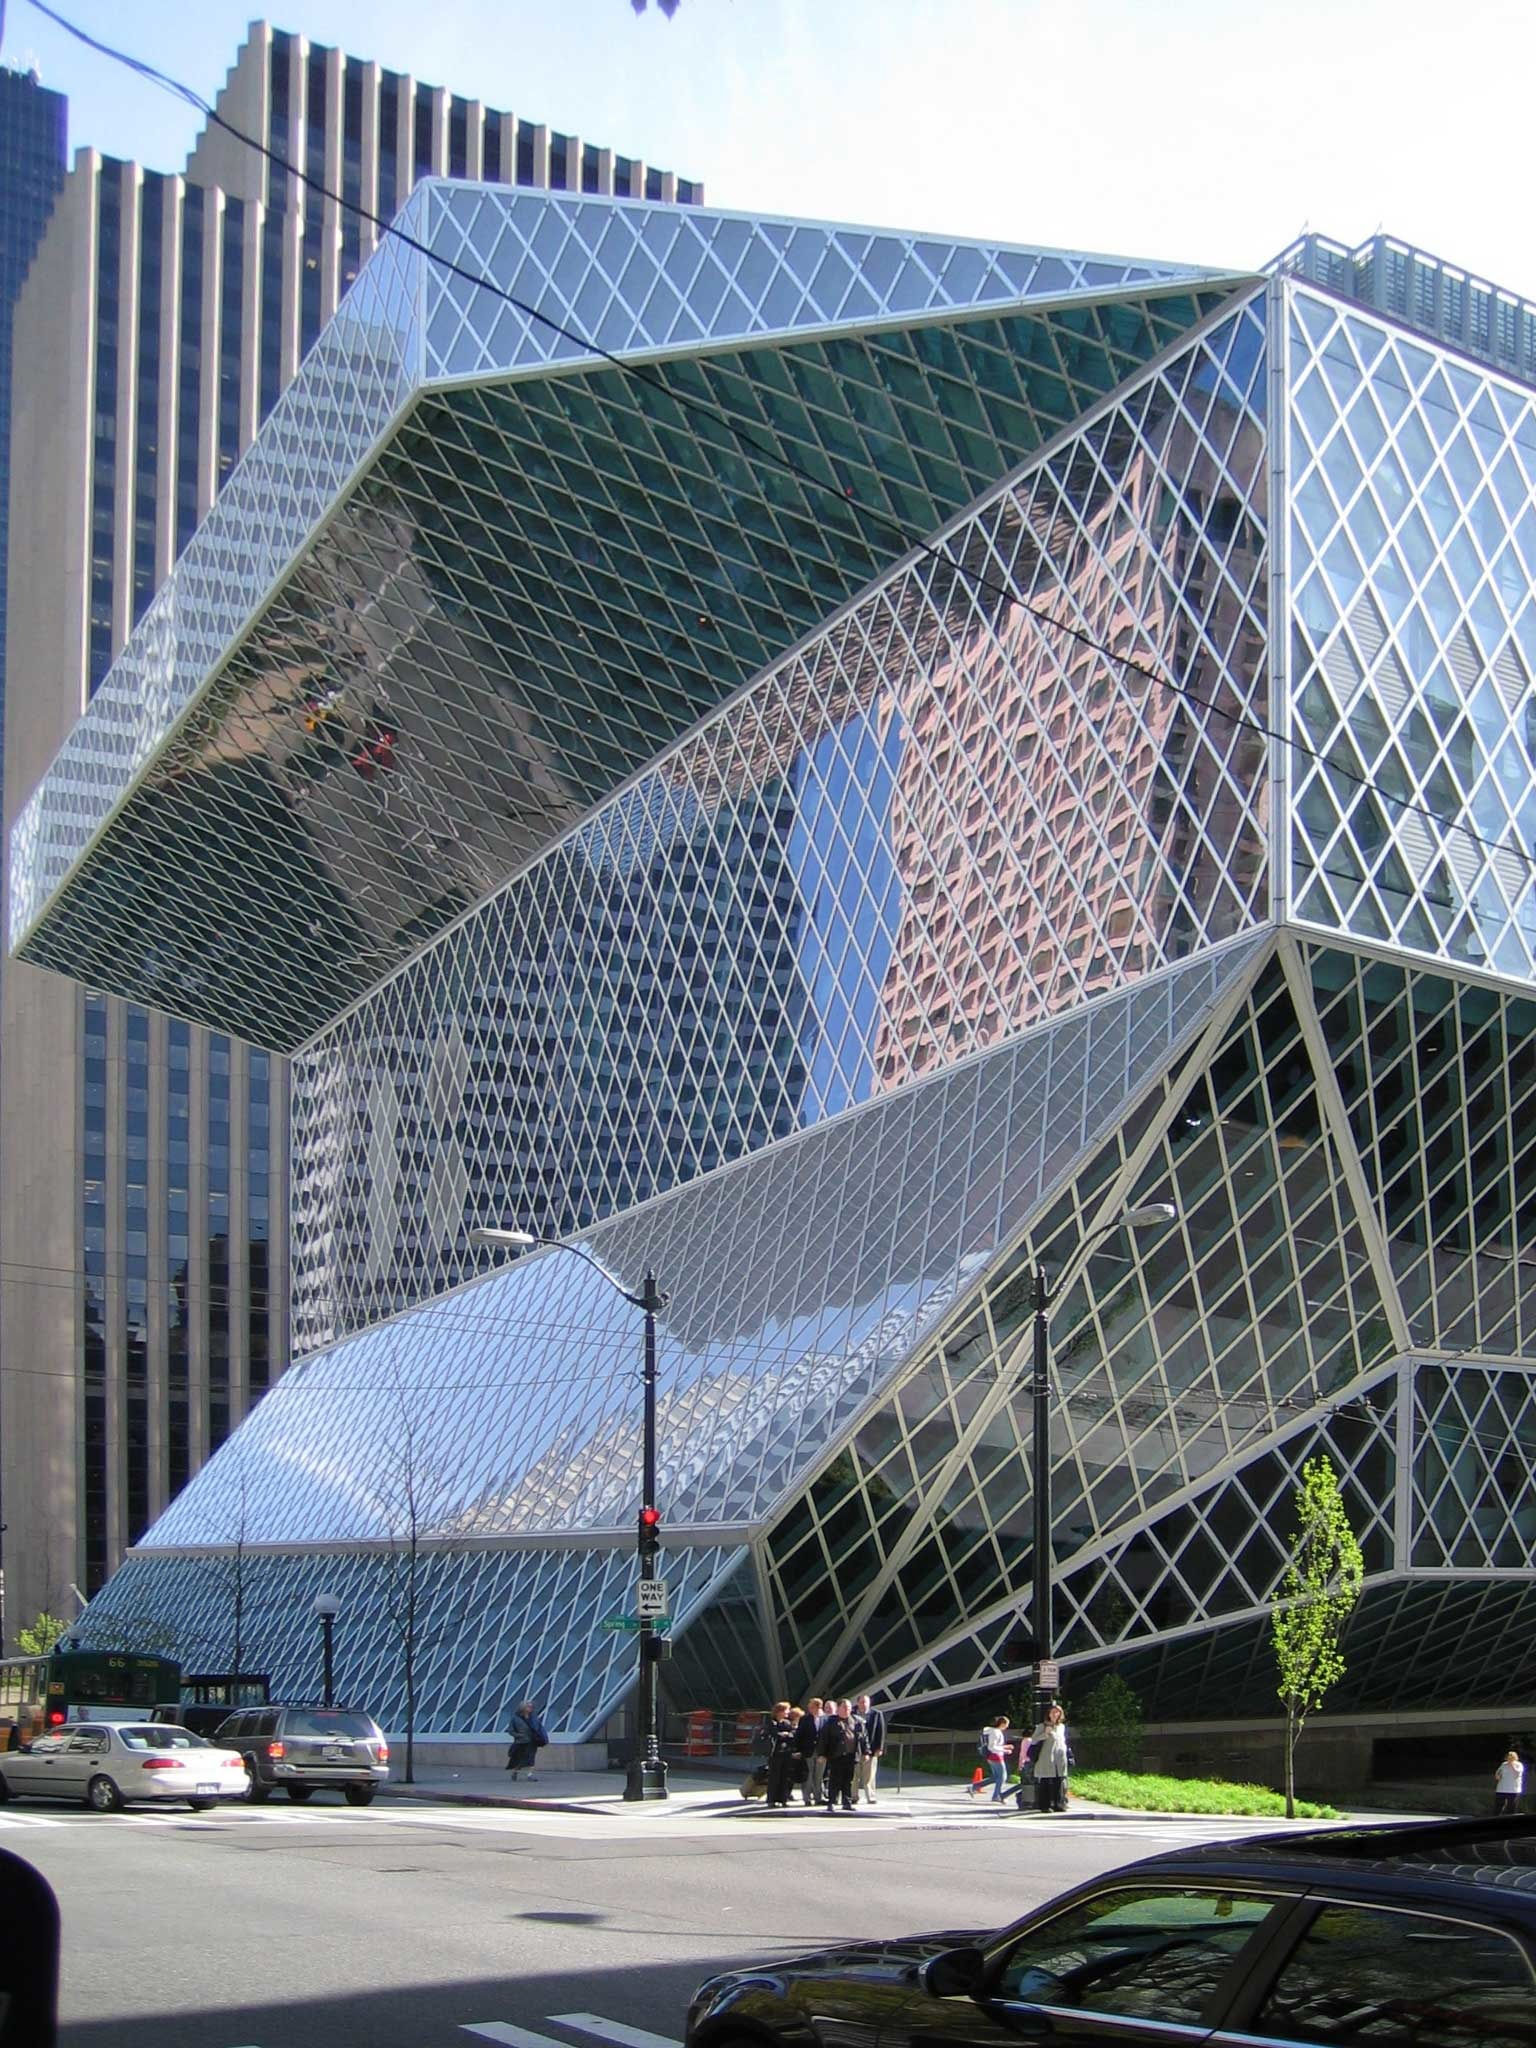 Seattle Central Library building designed by Rem Koolhaas